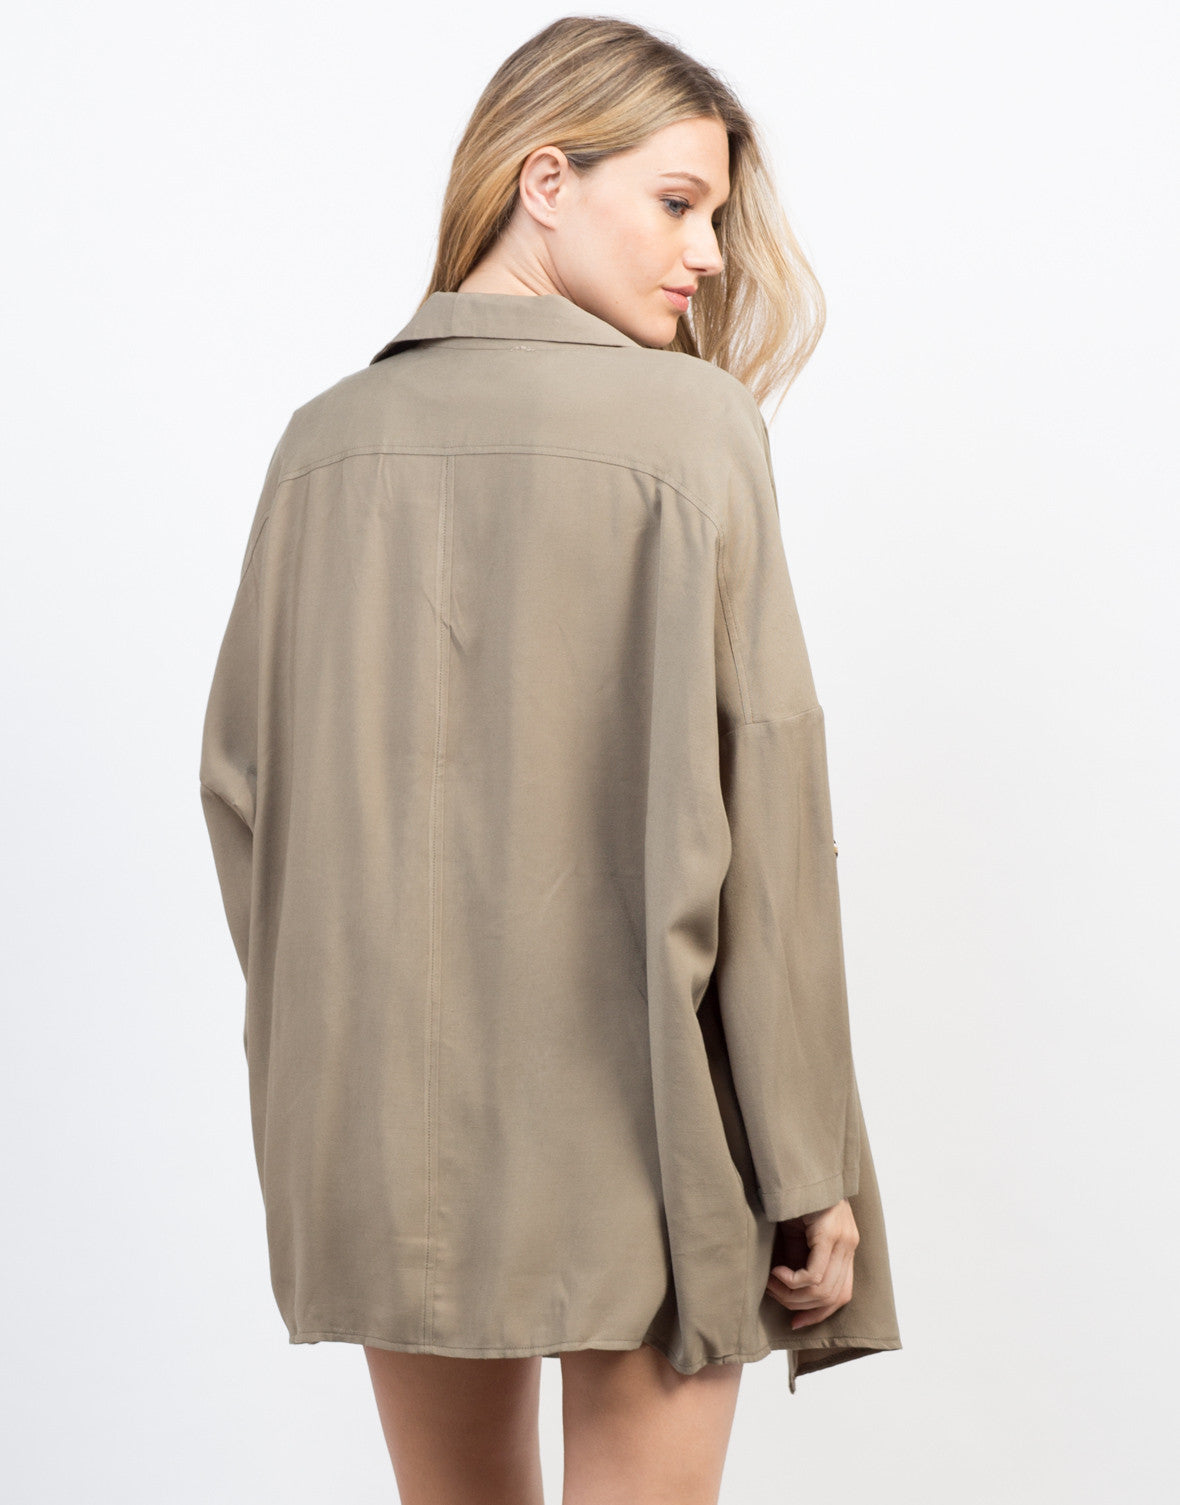 Back View of Flowy Buttoned Trench Jacket